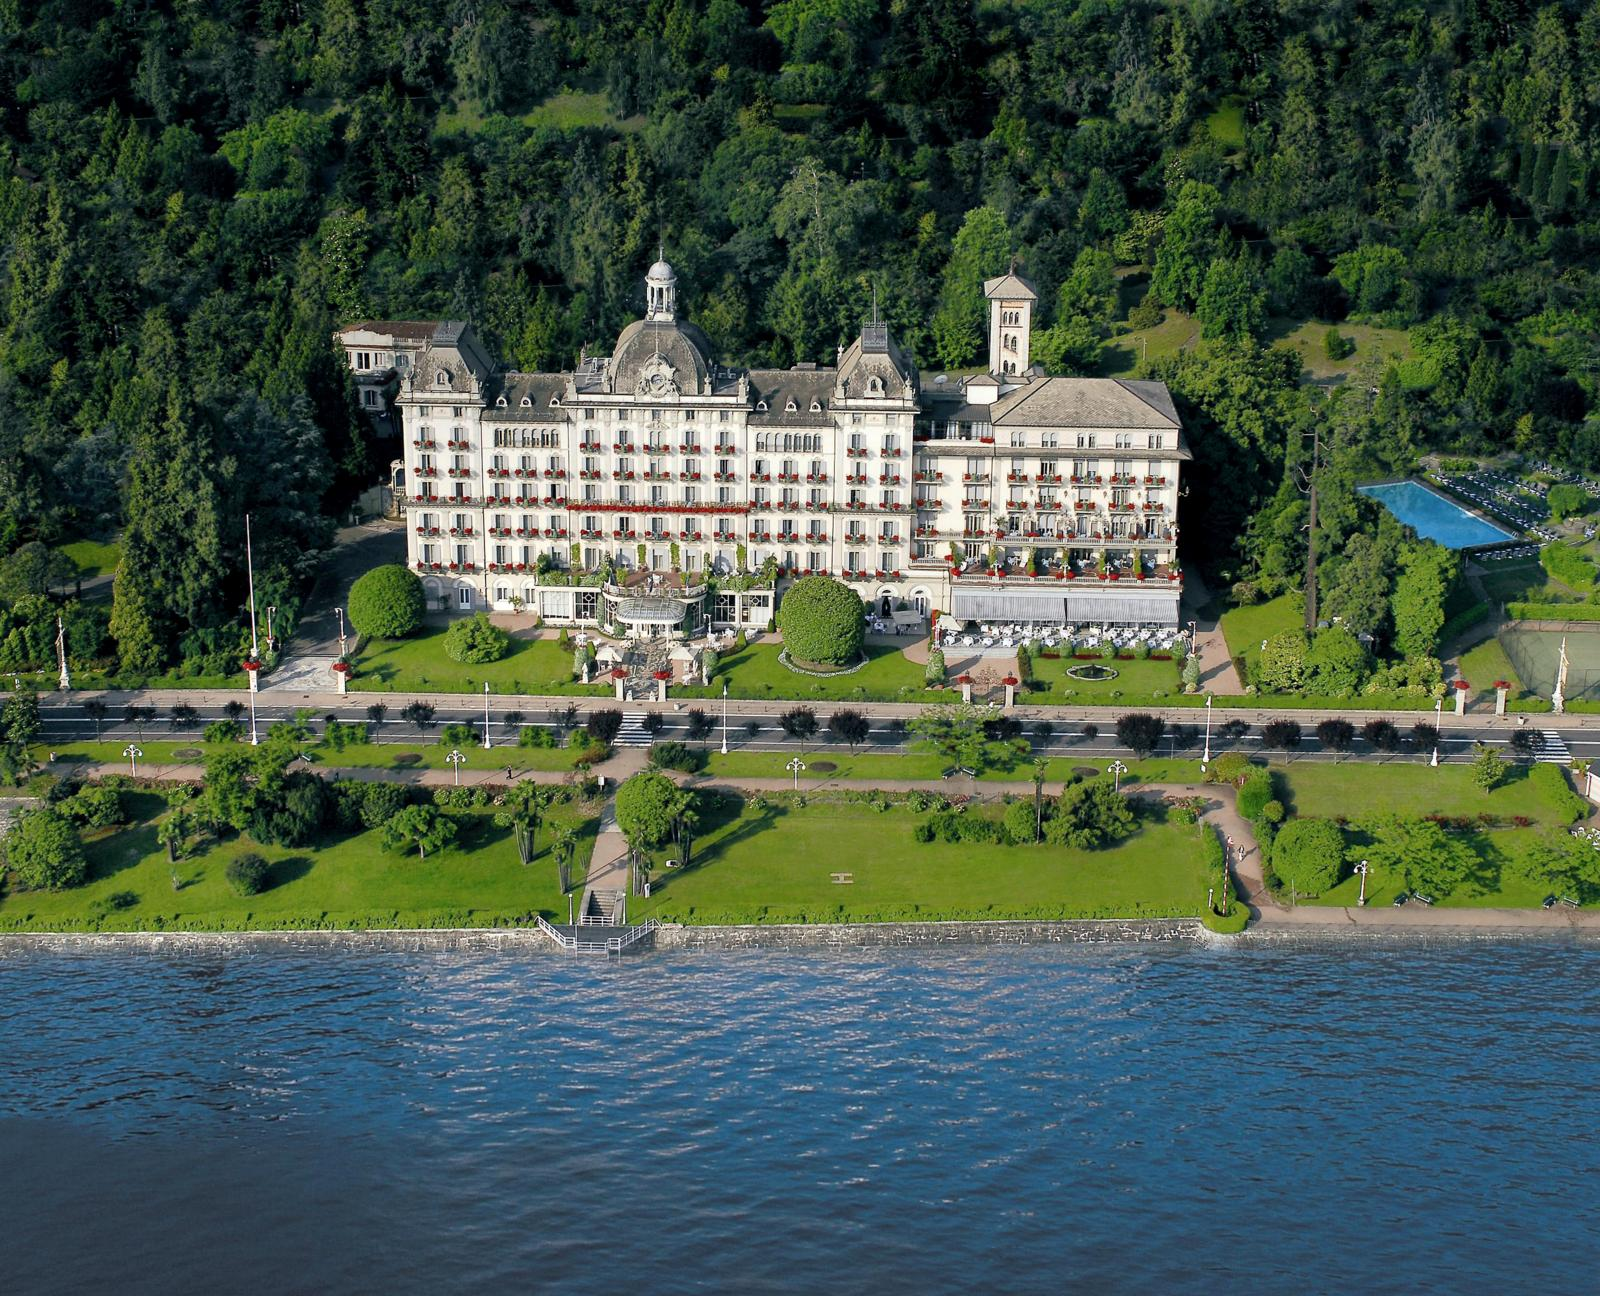 Grand hotel des iles borromees deluxe escapesdeluxe escapes for Grand hotel